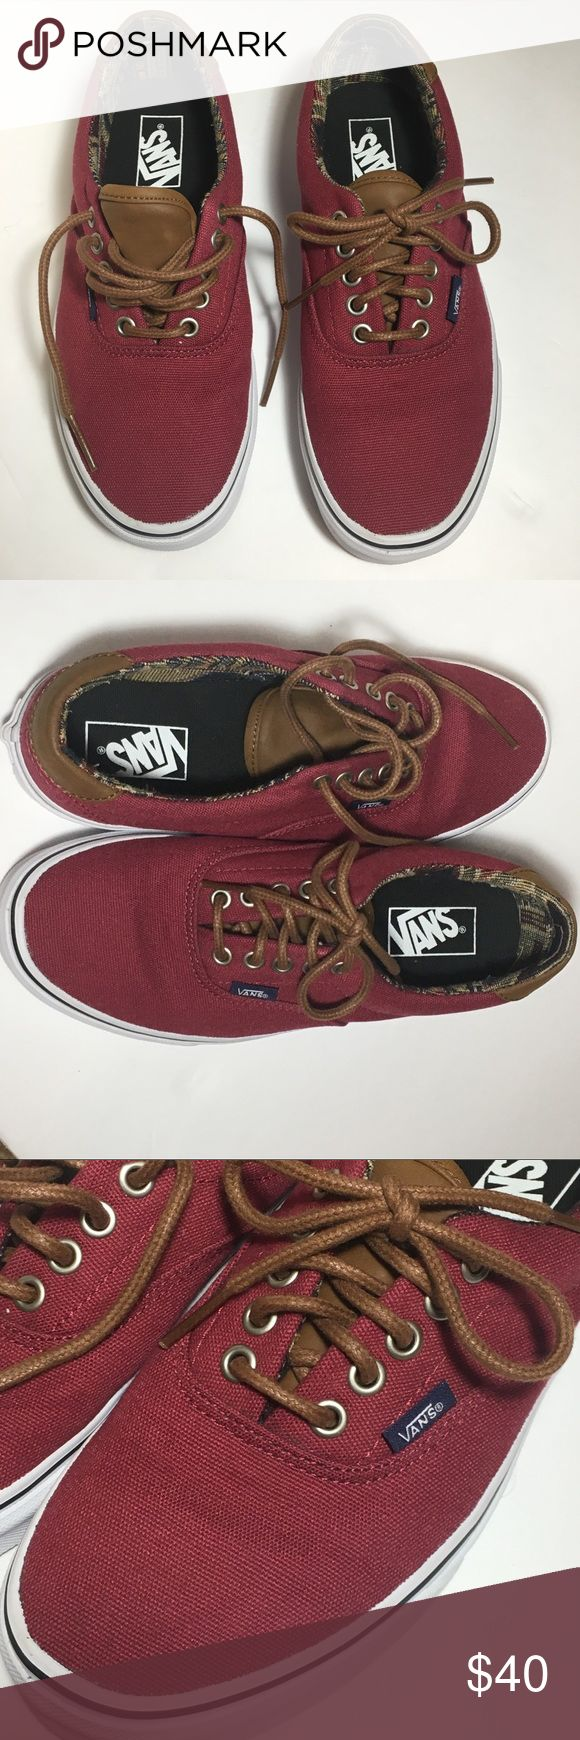 VANS C&L ERA Burgundy size 8.5 women's - 7 men's Only worn once! In like new condition. Low top lease up the vans with brown leather tongue and heal. Tapestry design inside of shoe. Brown laces. Burgundy color, I think Vans calls it Port Royale. Around ankle has cushion support. US women's 8.5 US men's 7.0 Great all year long shoe. You can't go wrong with a classical pair of vans! Thanks for visiting my closet feel free to look around!🤗 Vans Shoes